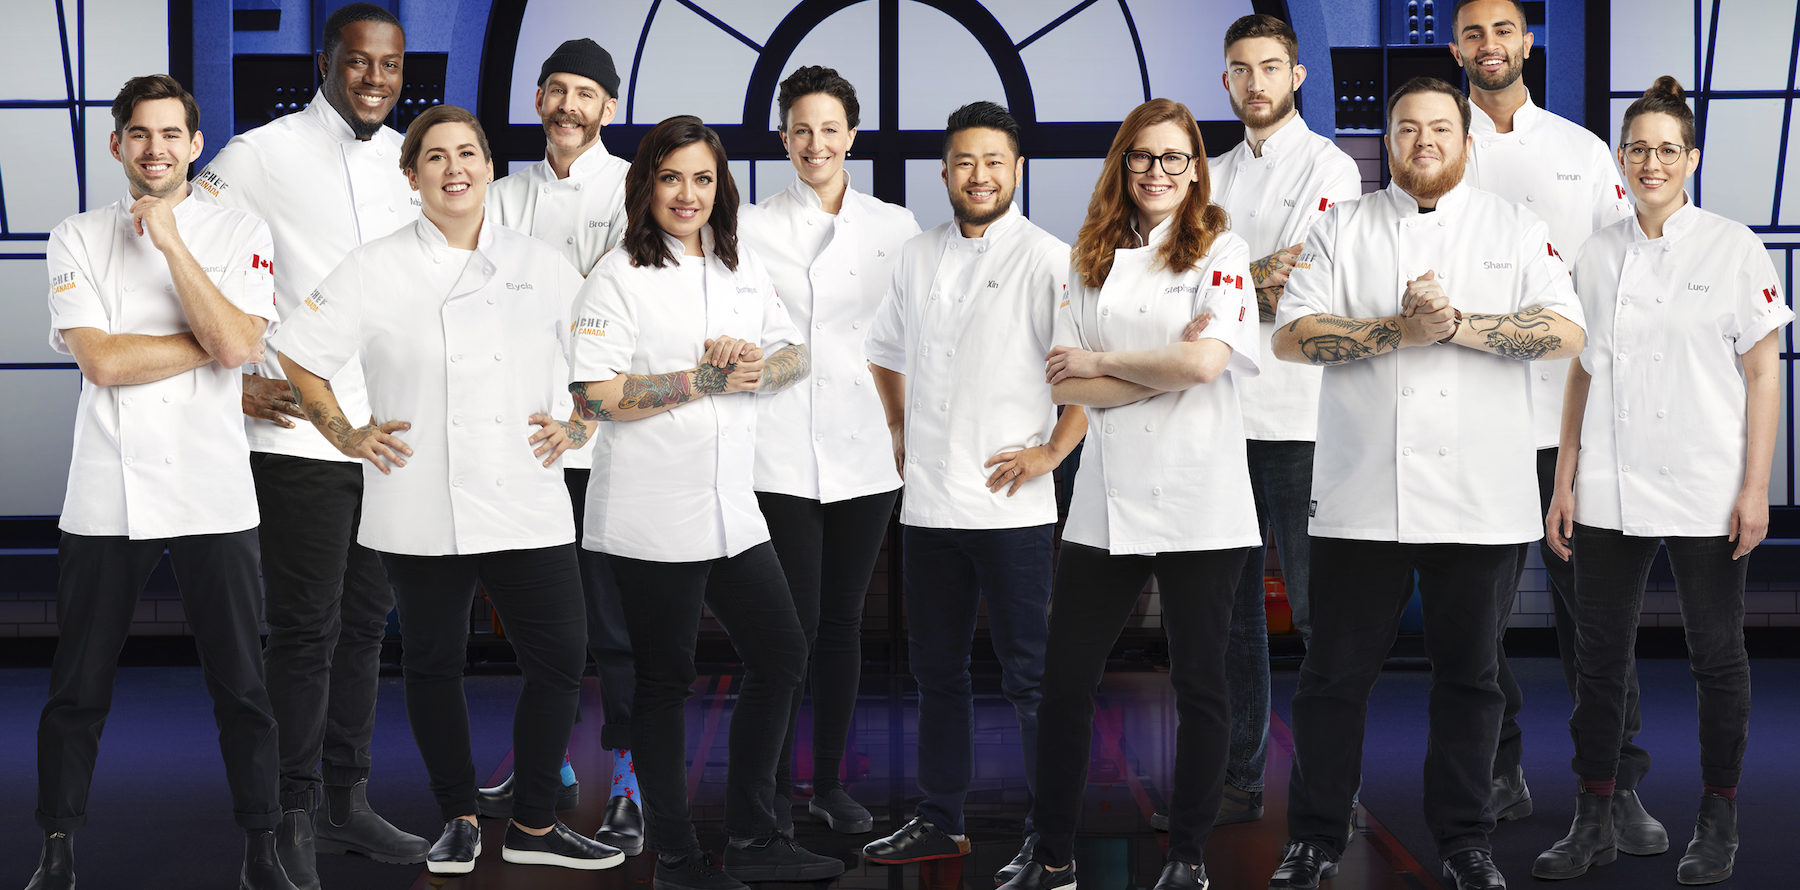 Stofa's Imrun Texeira and Dominique Dufour of Gray Jay cook on-screen in Top Chef Canada